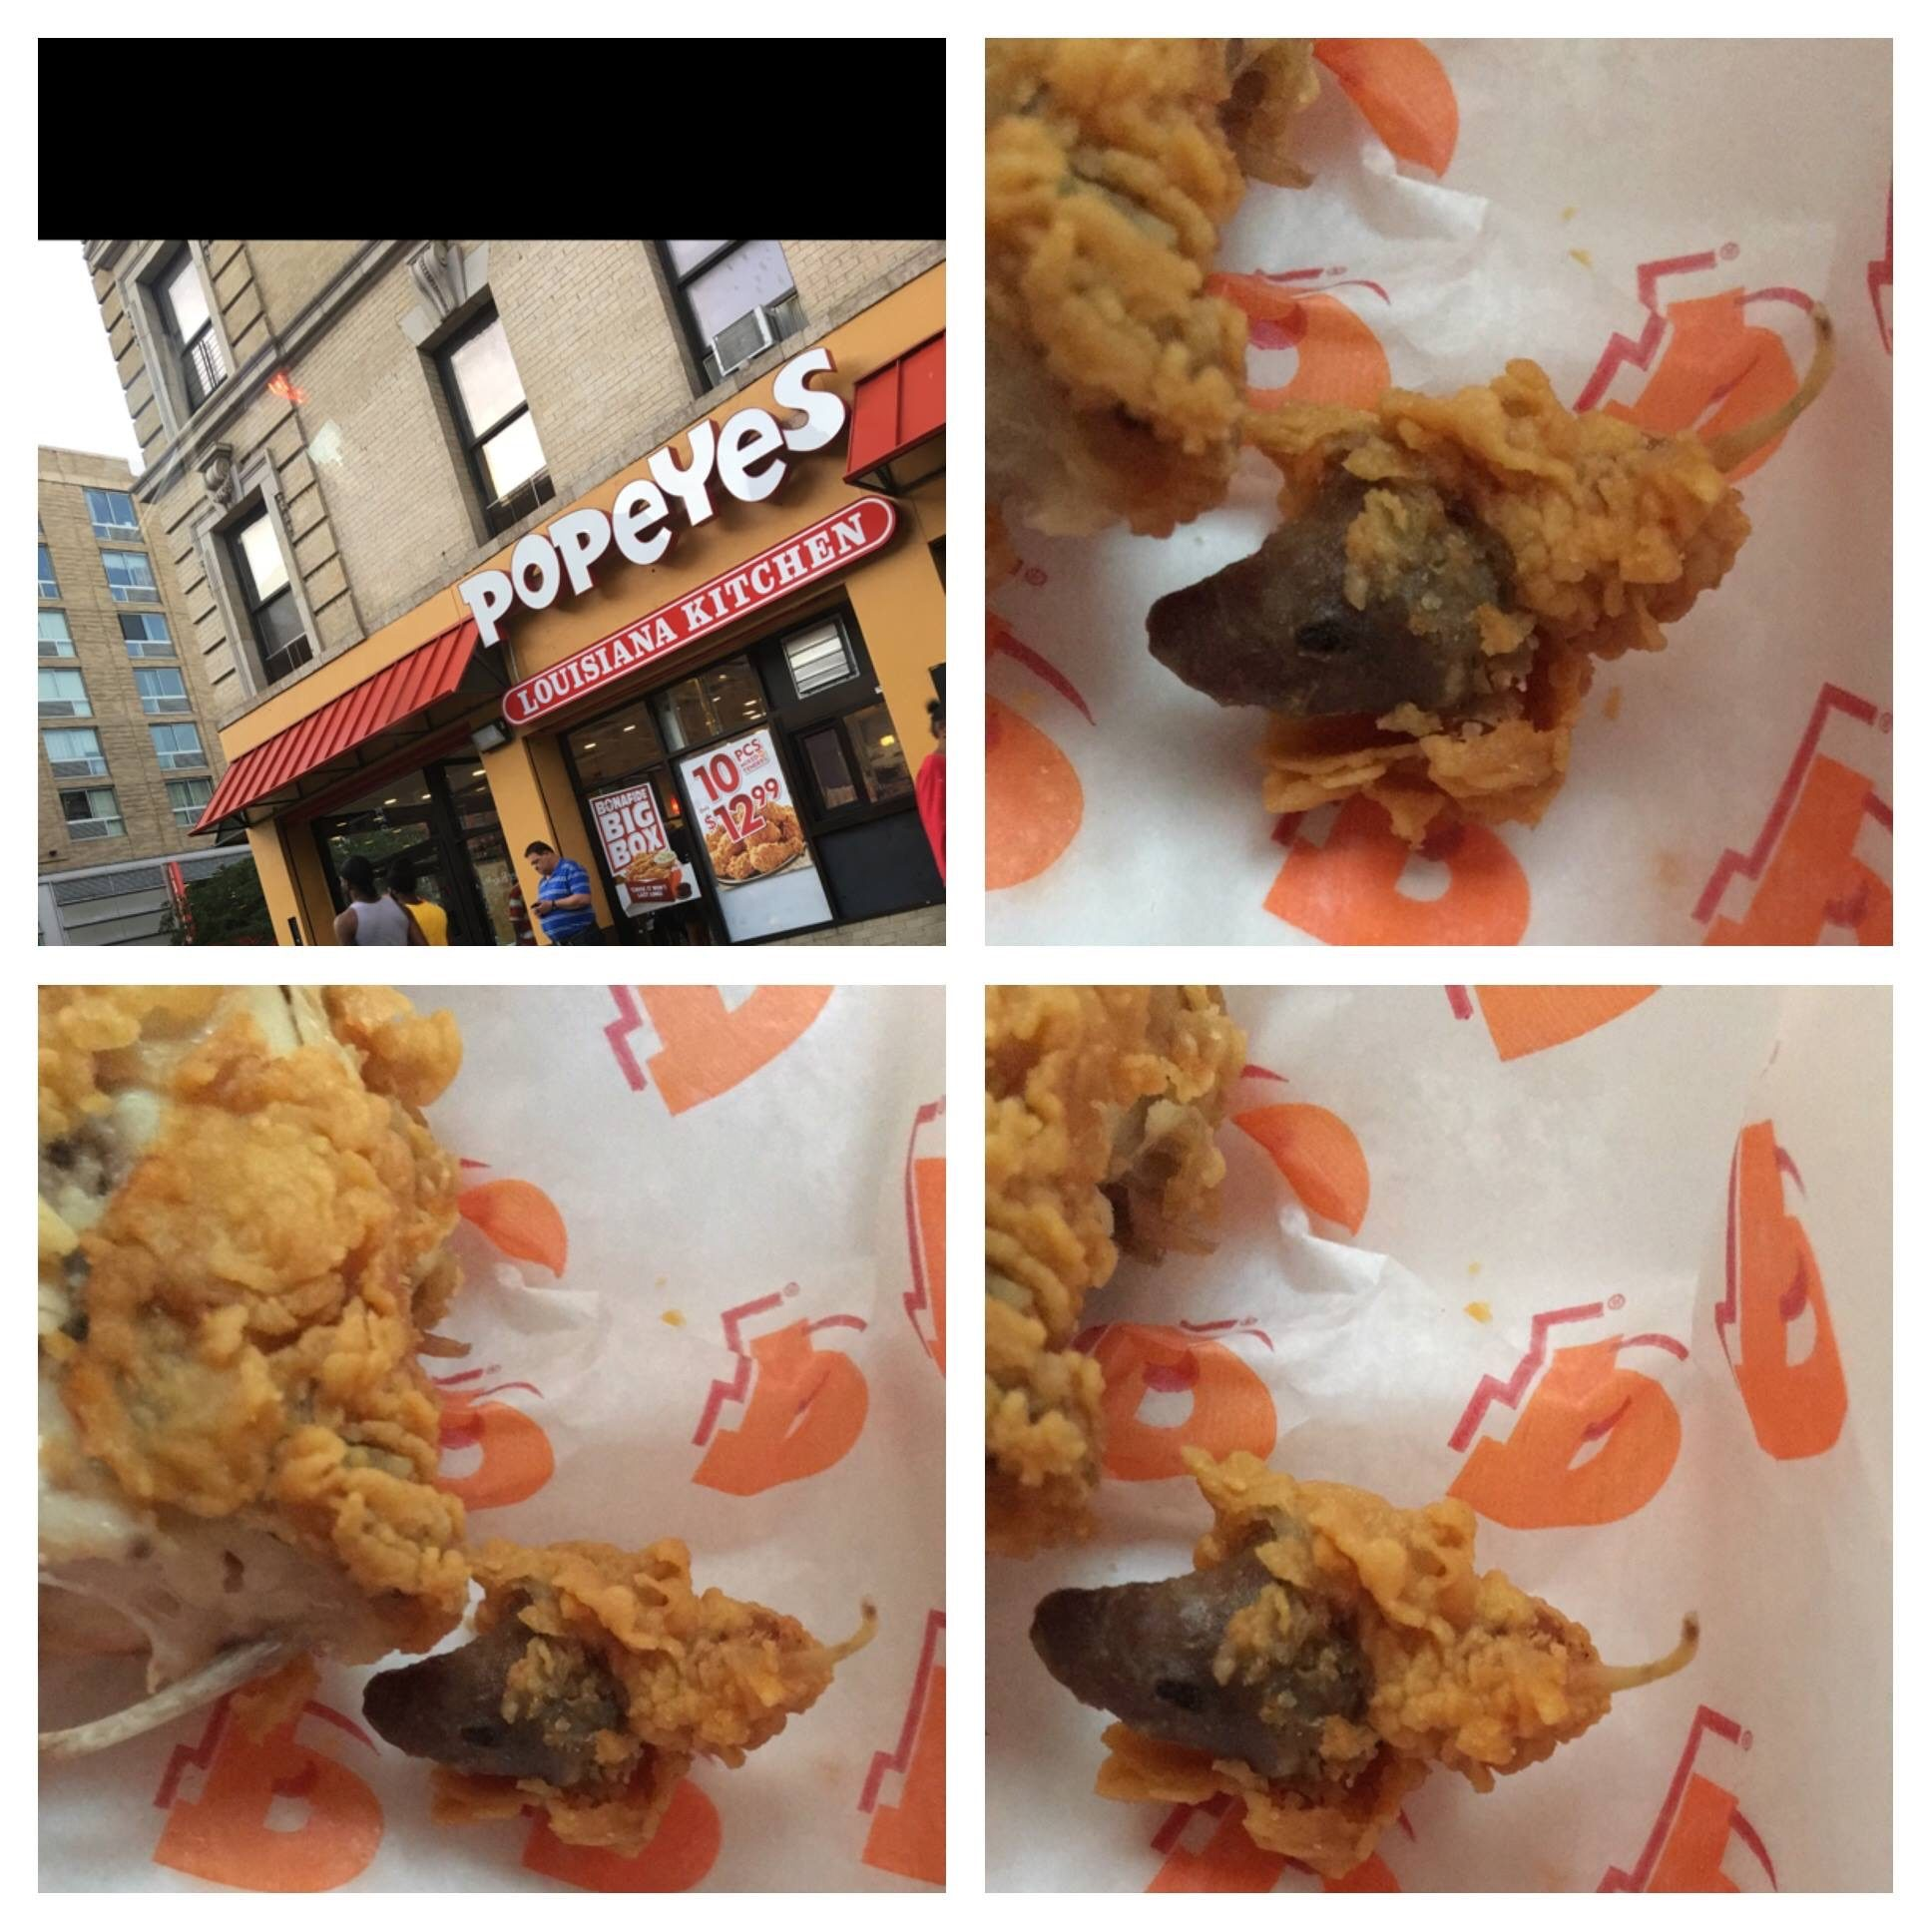 Customer Reports Finding Rat Head In Popeyes Chicken